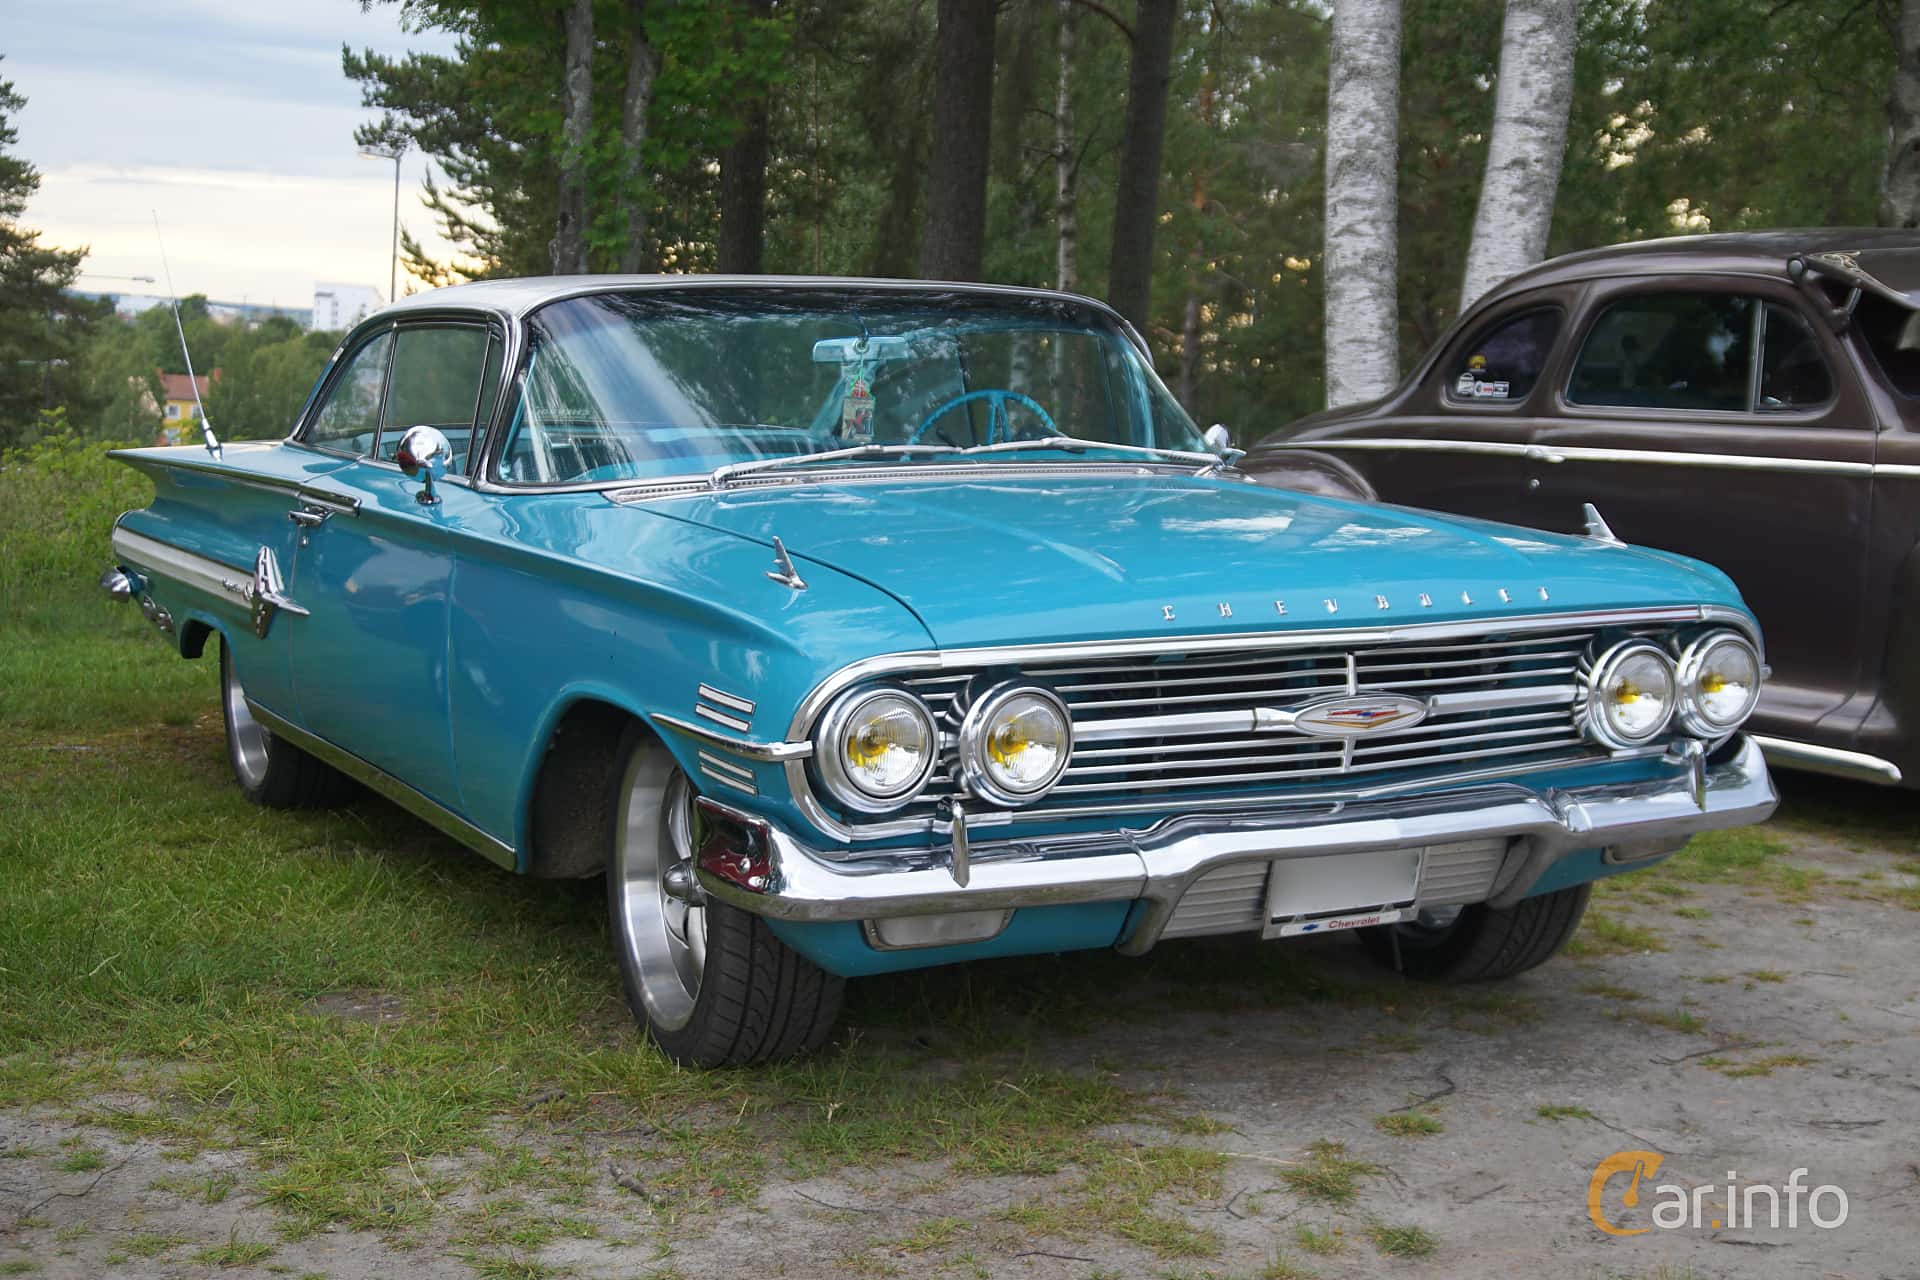 4 Images Of Chevrolet Impala Sport Coupe 3 9 Manual 137hp